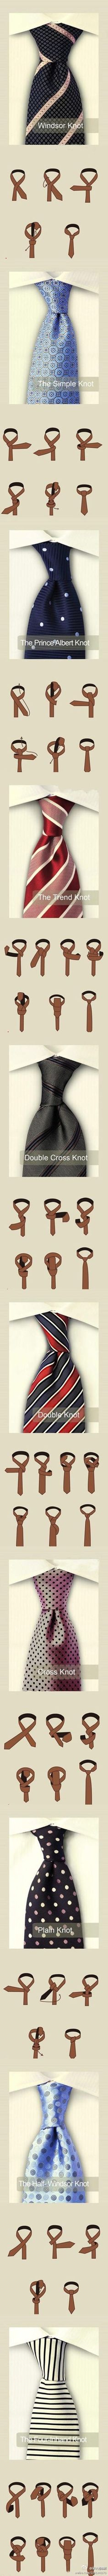 10 ways to tie a neck tie For all those men in my life :P